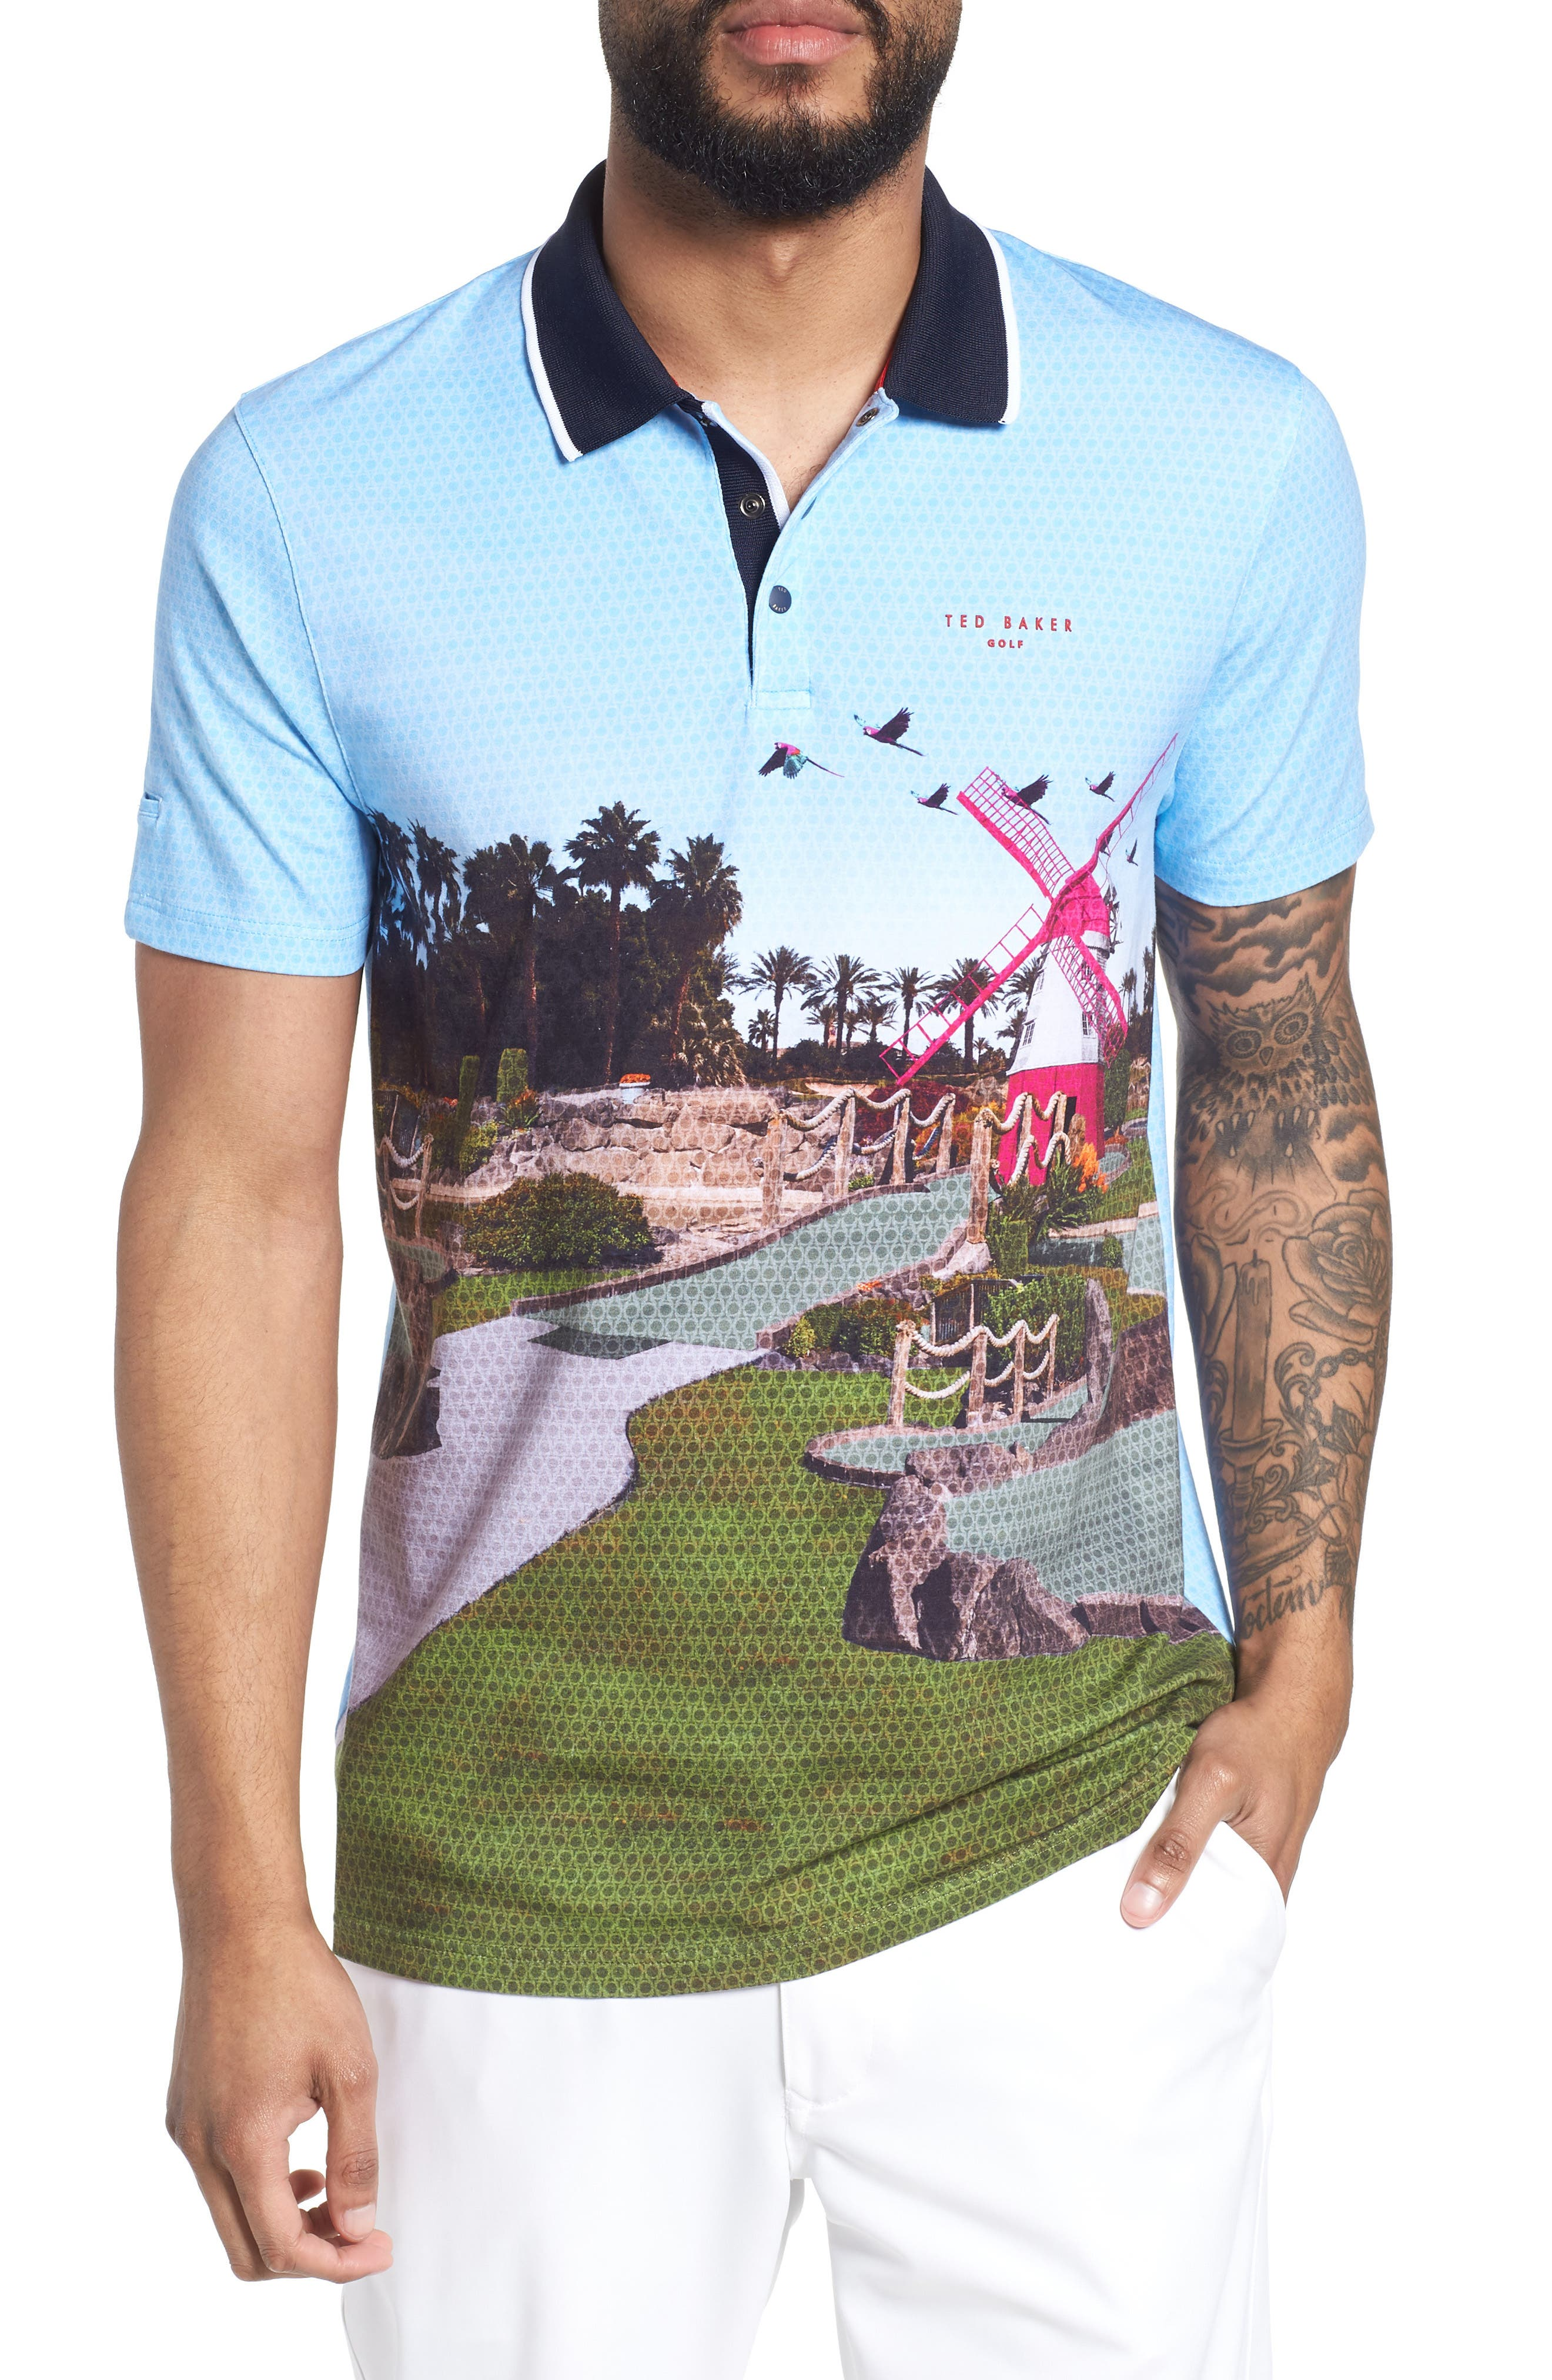 Ted Baker London Placement Trim Fit Golf Polo